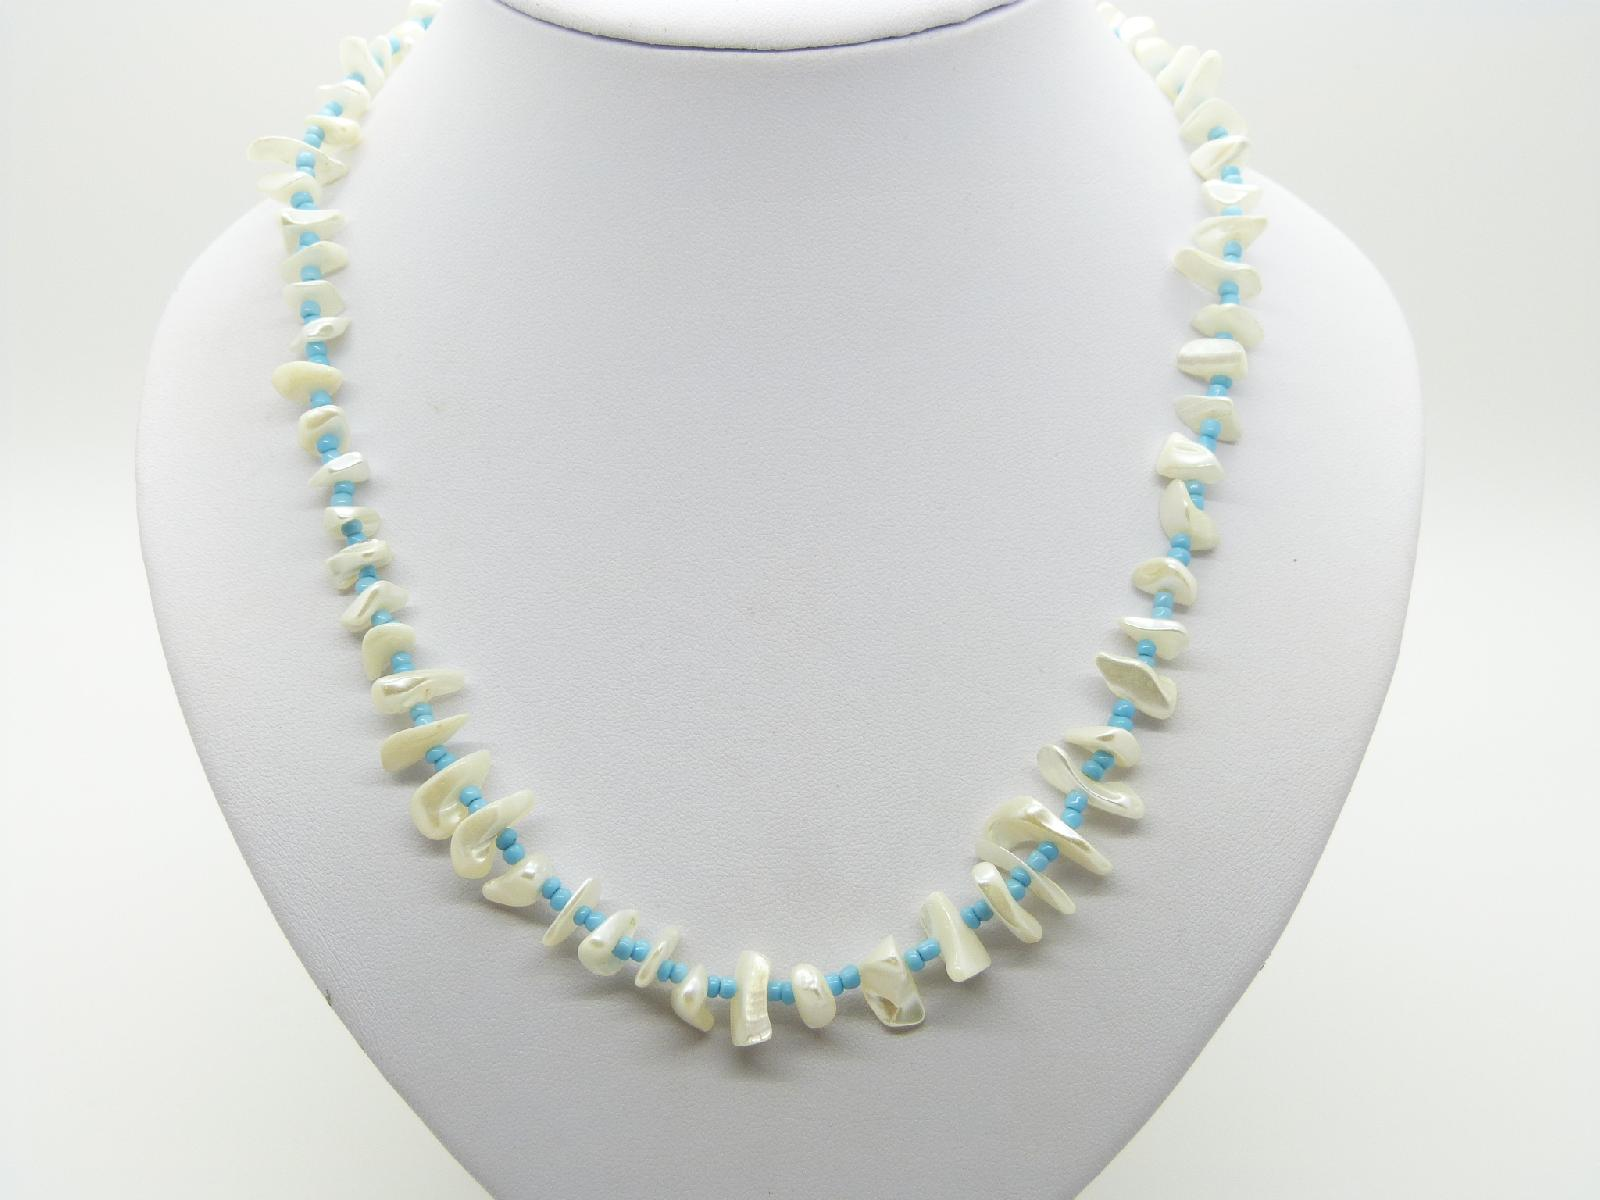 Vintage 30s Mother of Pearl Bead and Turquoise Glass Bead Necklace and Earrings 53cms